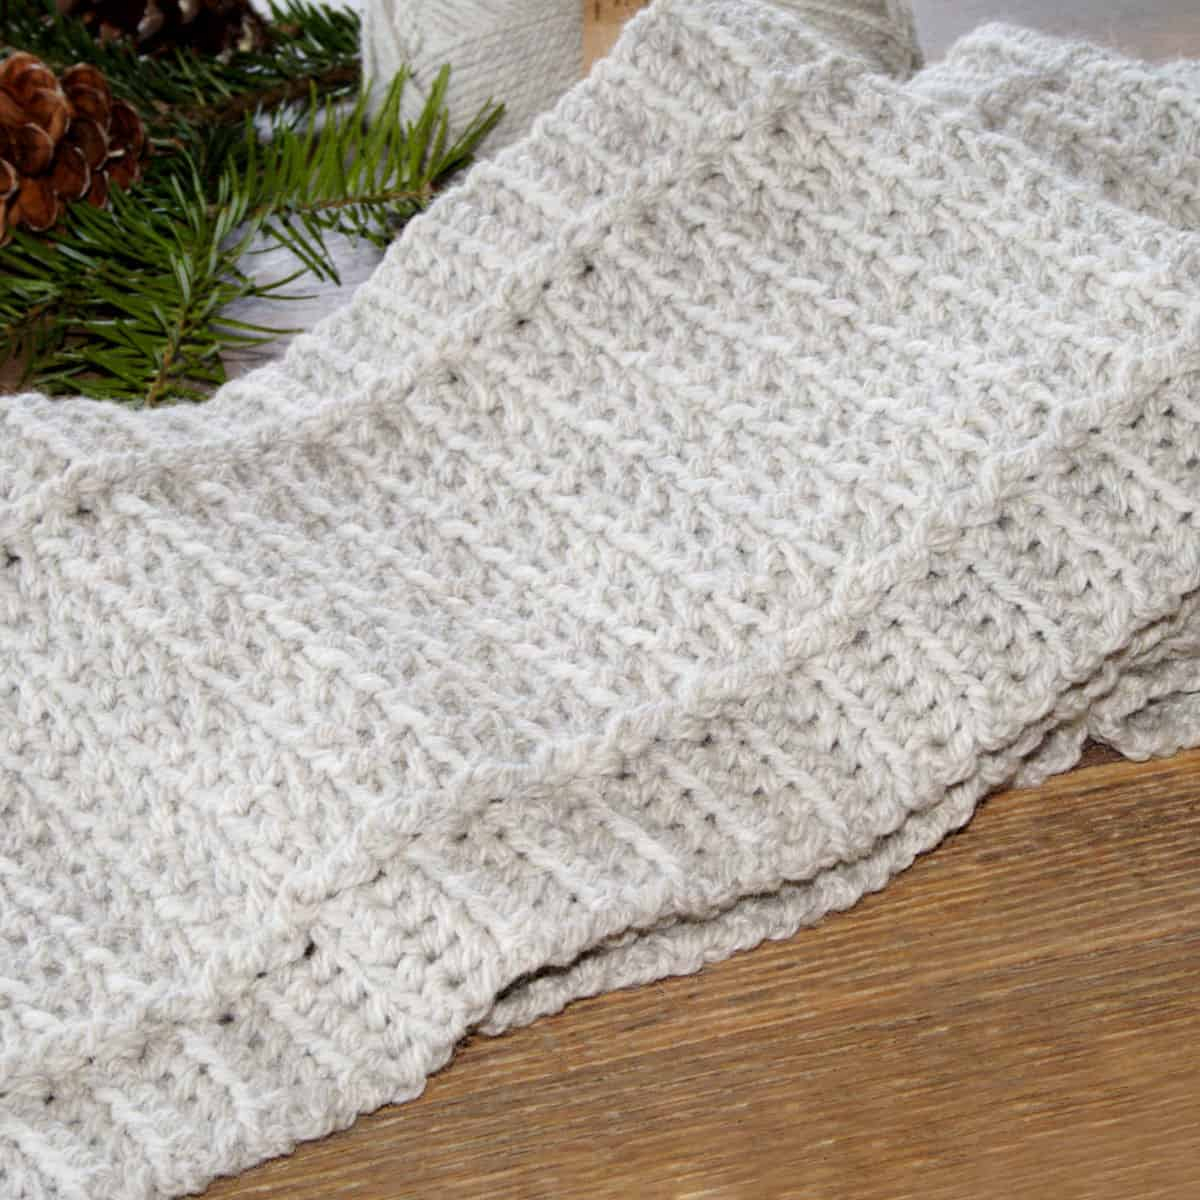 Scarf Crochet Pattern Free to Upgrade Your Winter Style Easy Crochet Scarf Free Winter Path Pattern Crochet Life